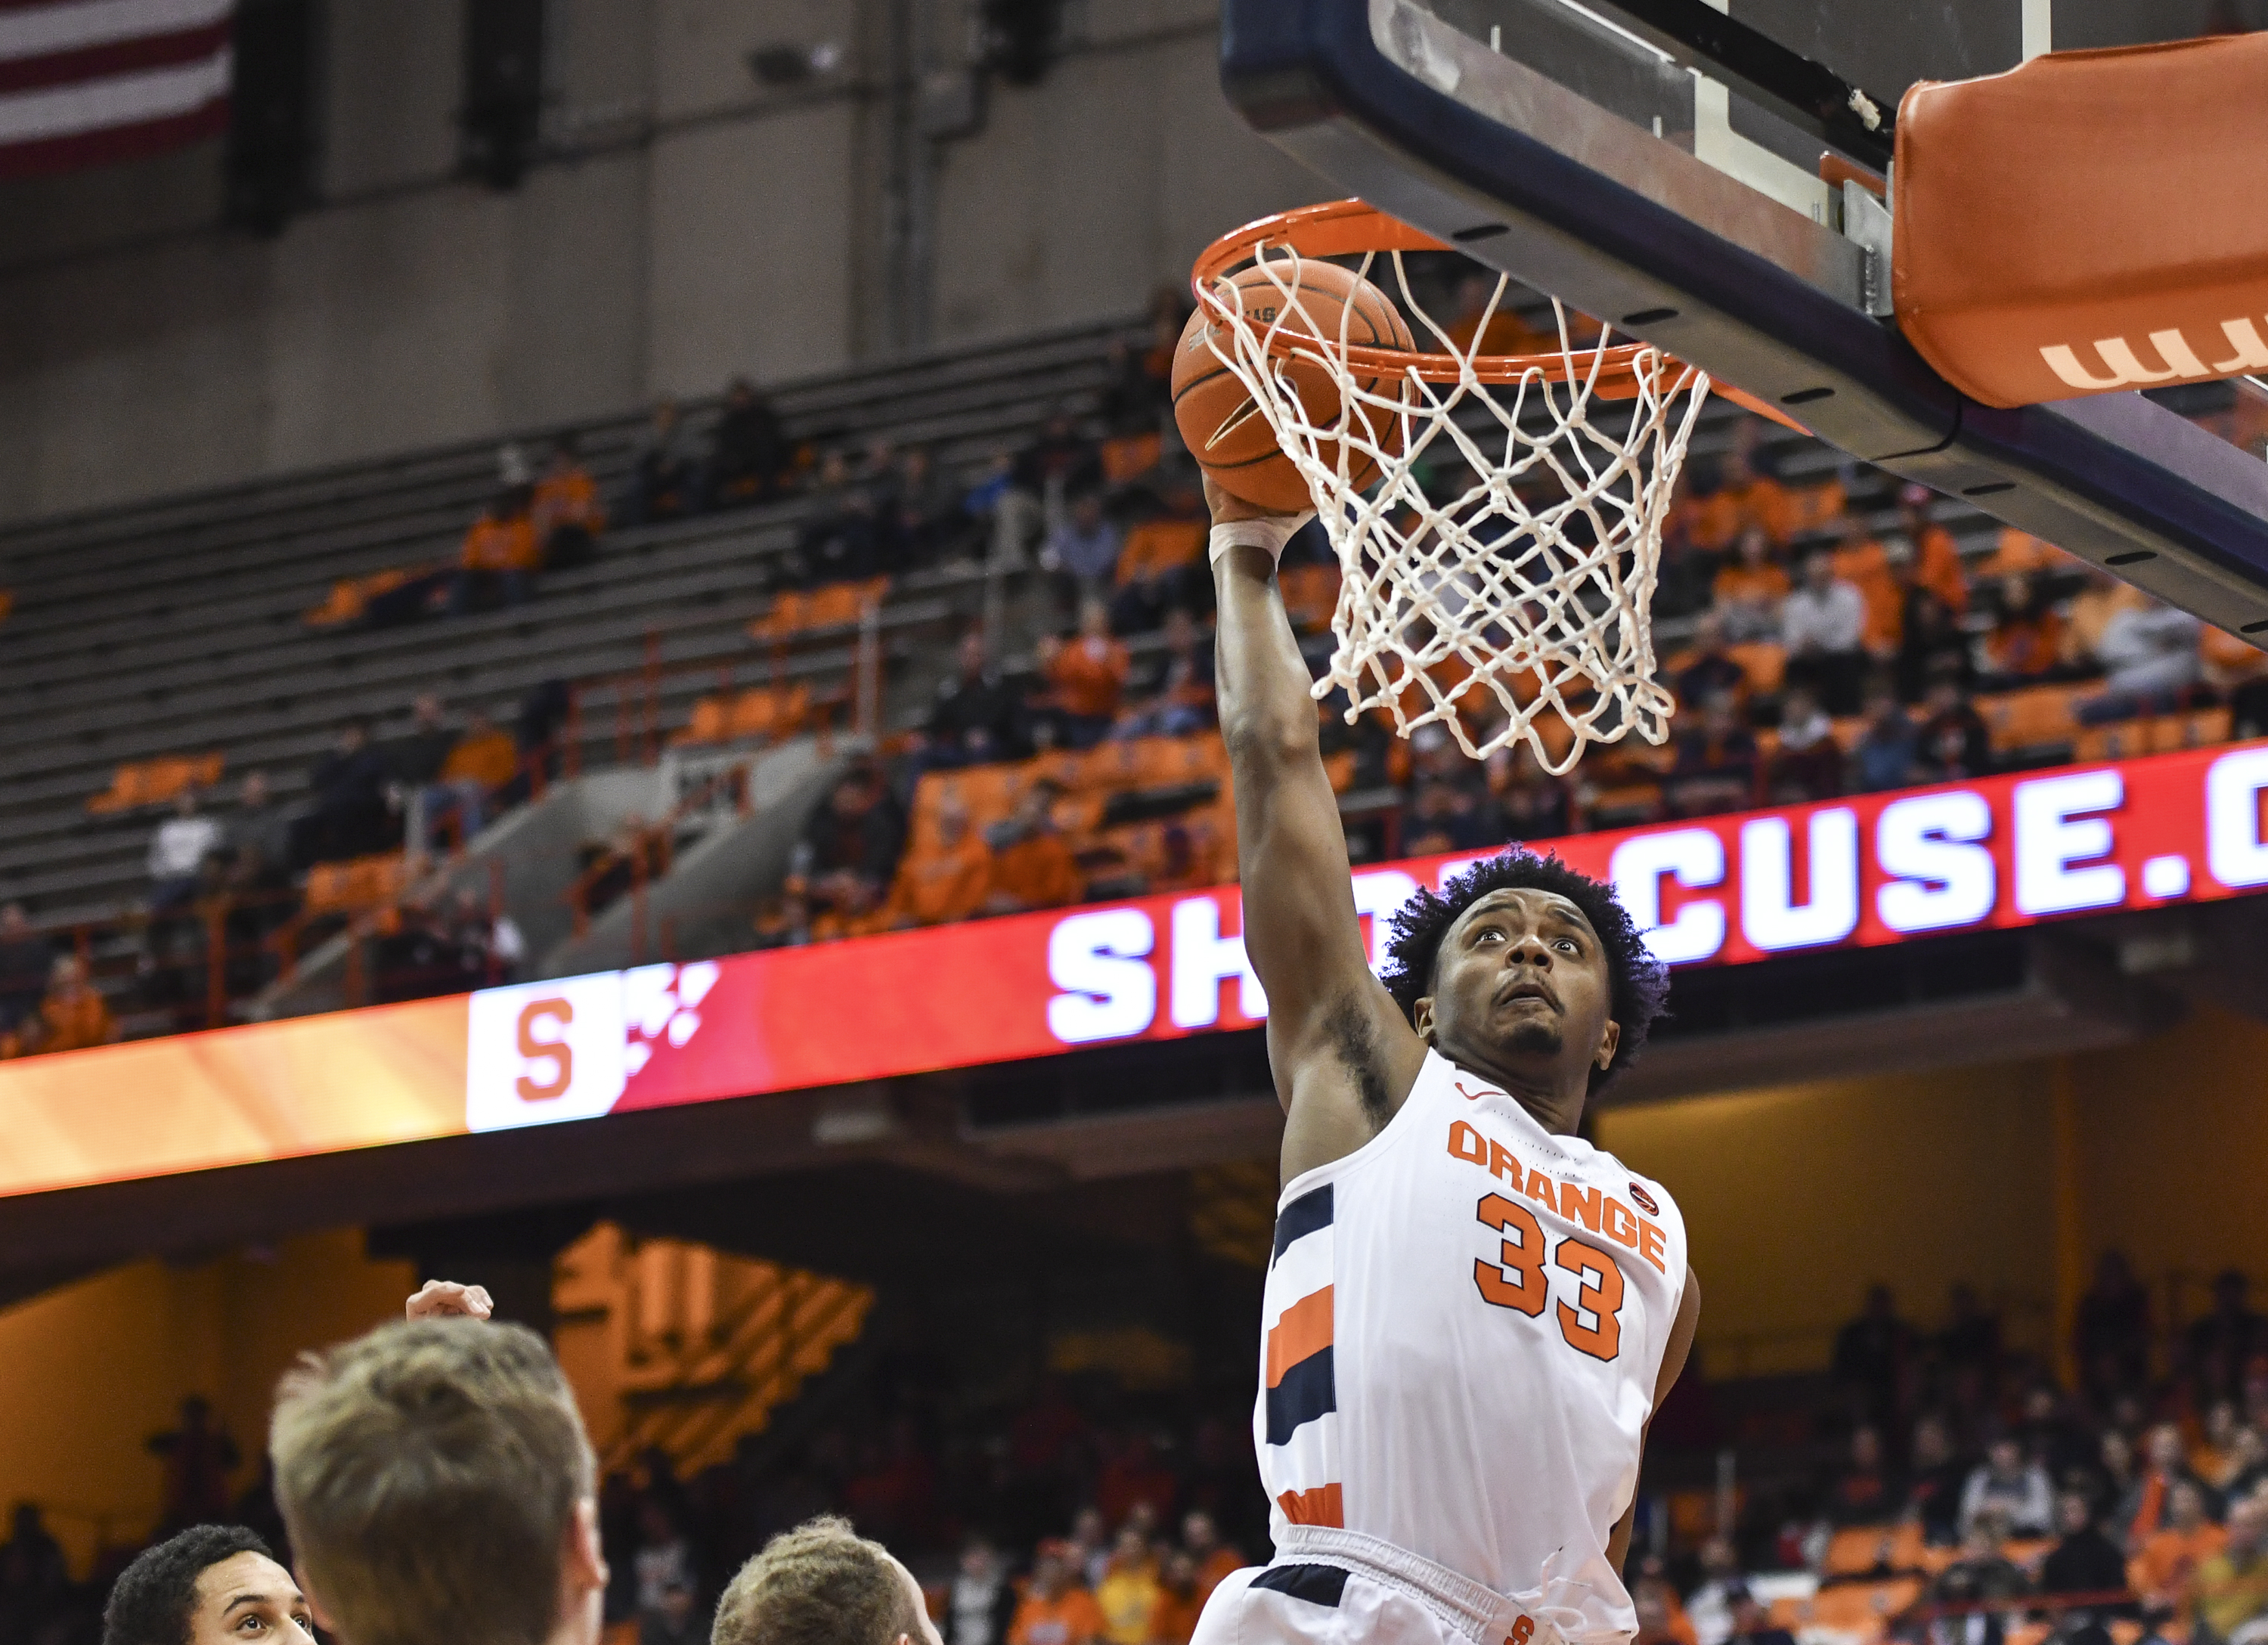 Syracuse Basketball vs. Oakland - Elijah Hughes dunk